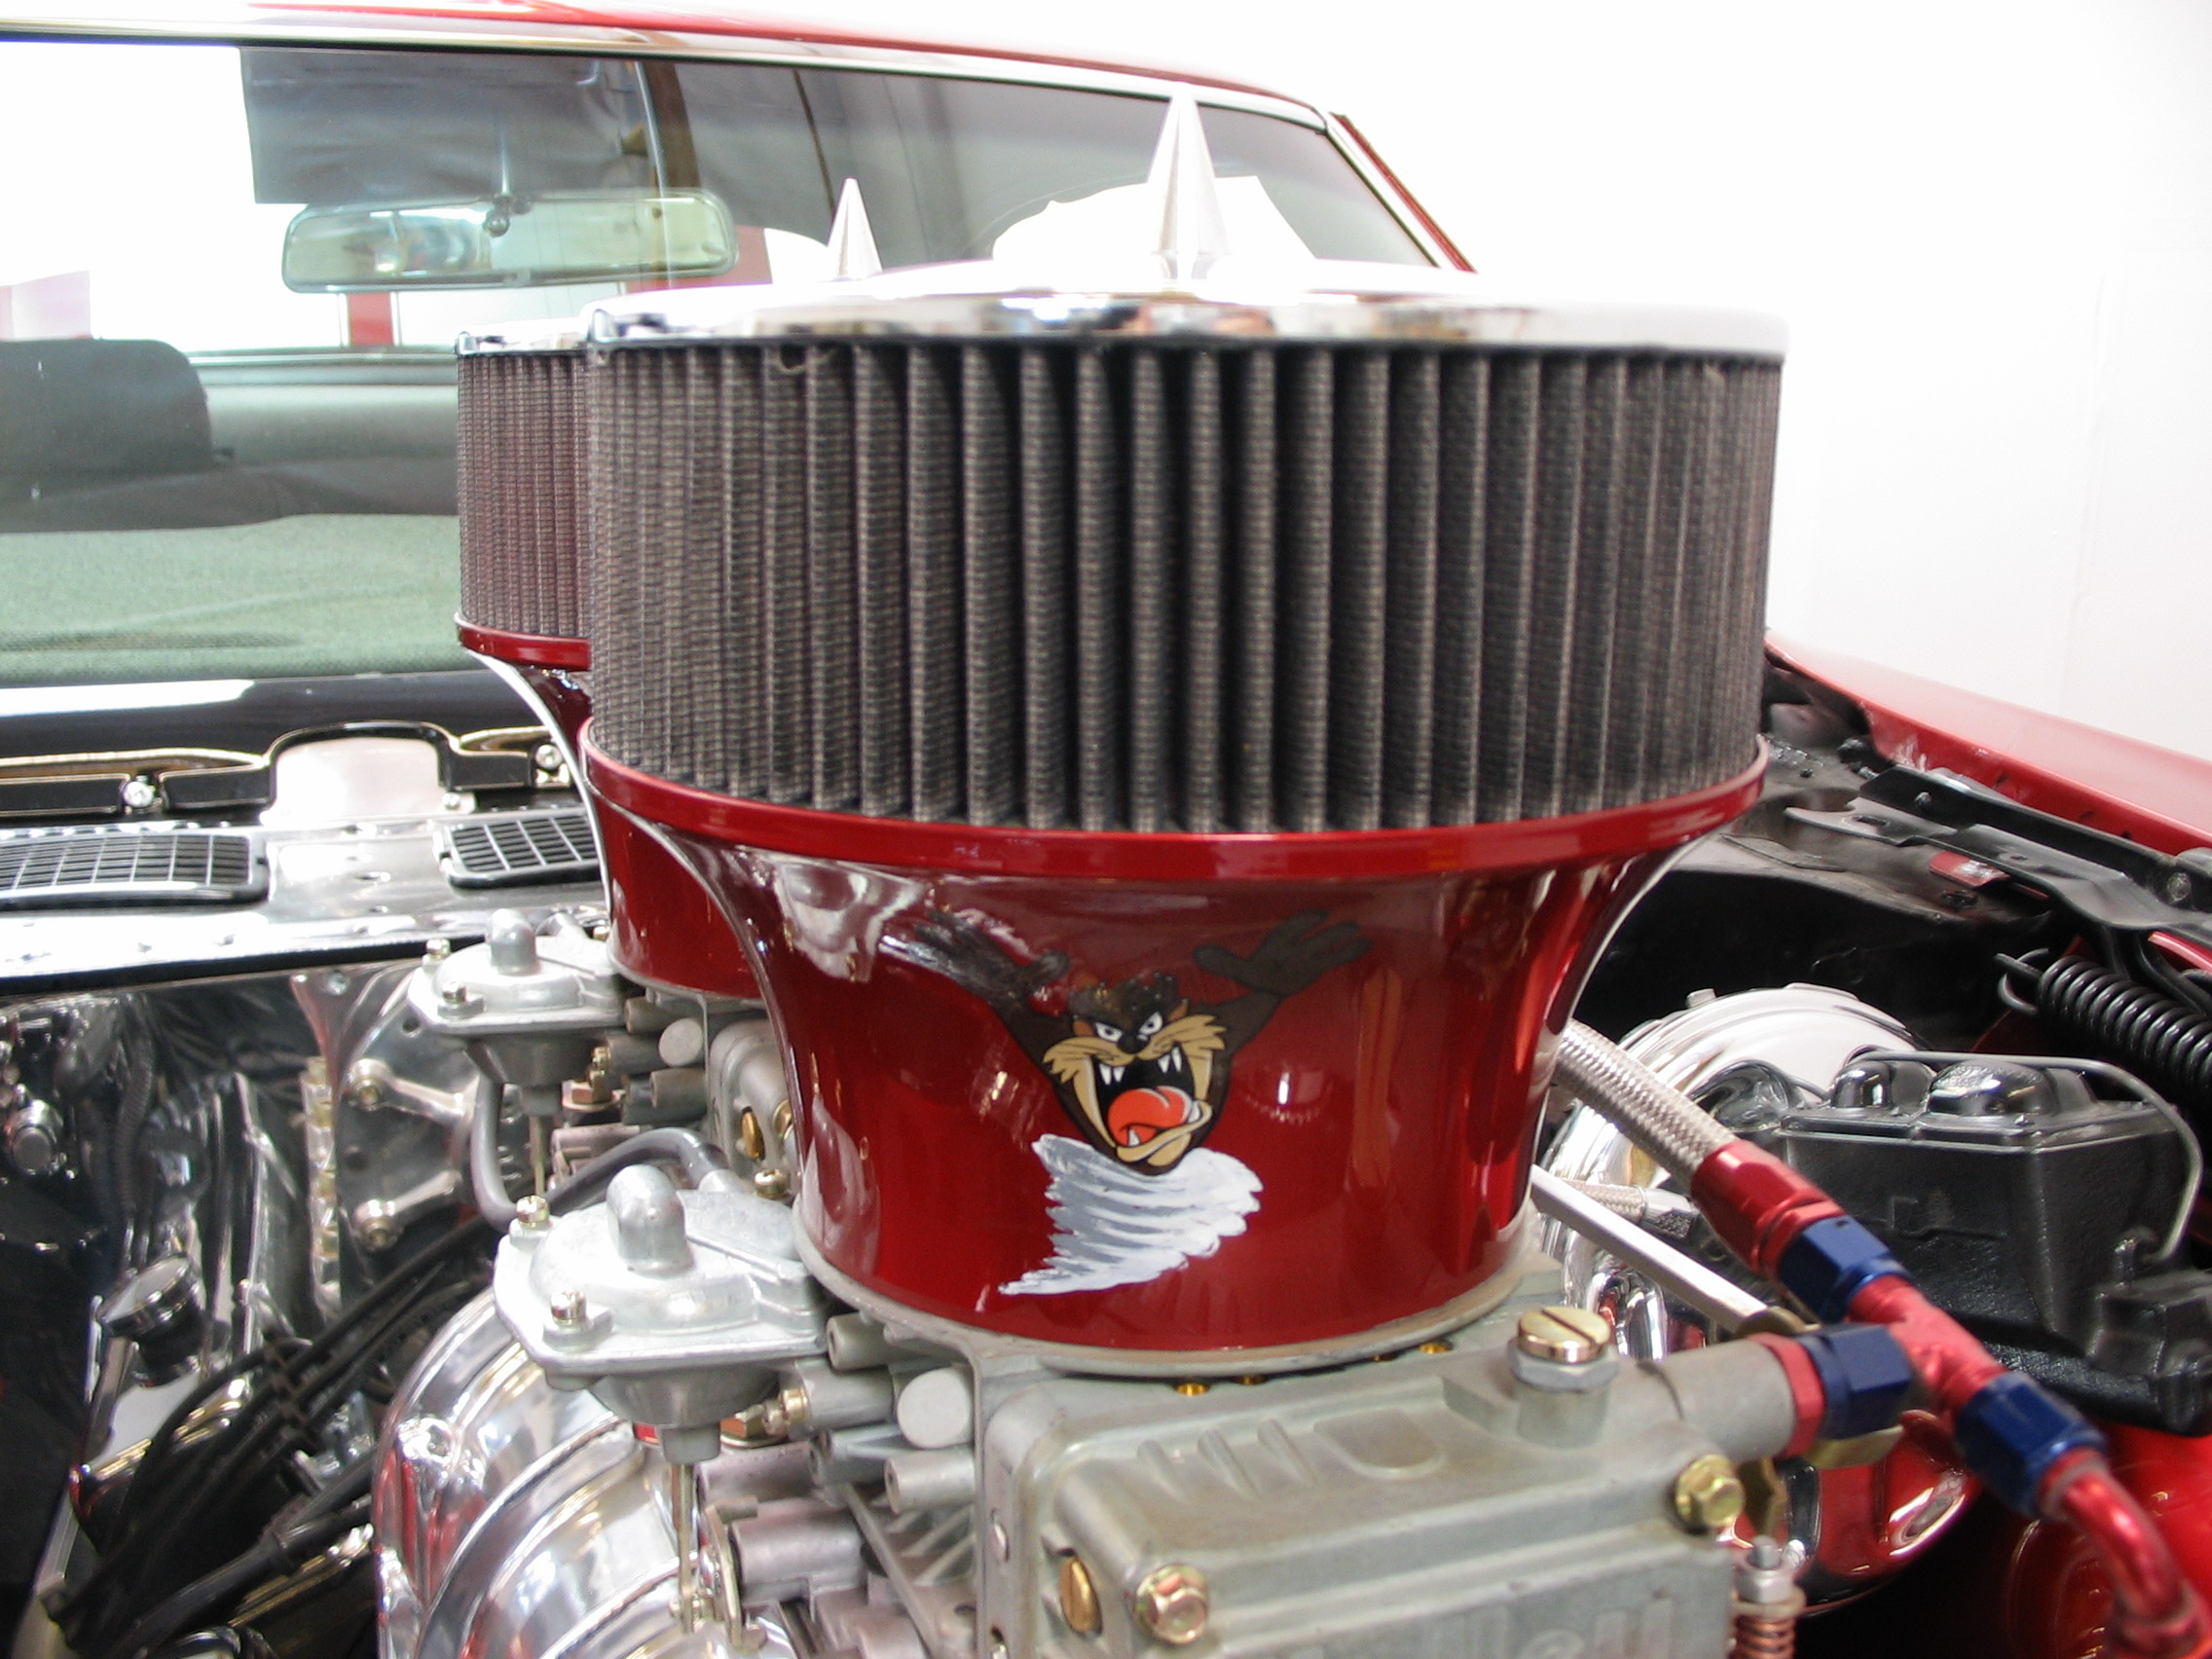 72' Chevelle engine